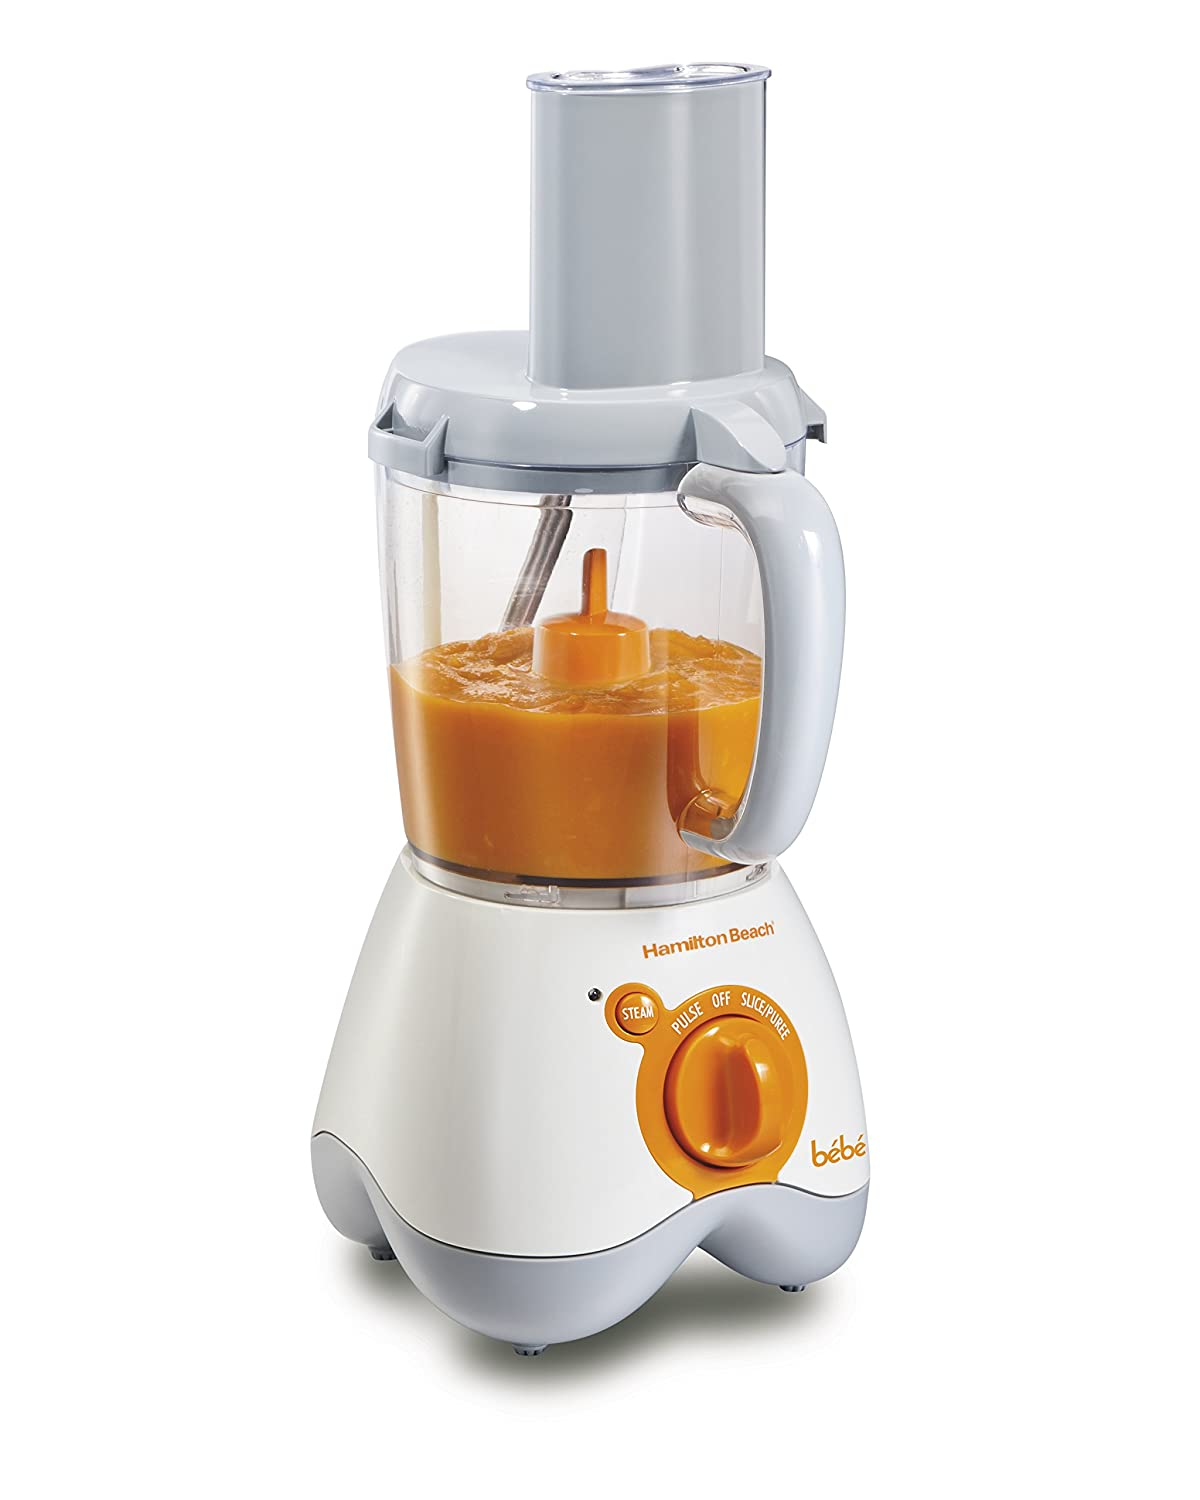 Top 7 Best Baby Food Makers Reviews in 2020 5